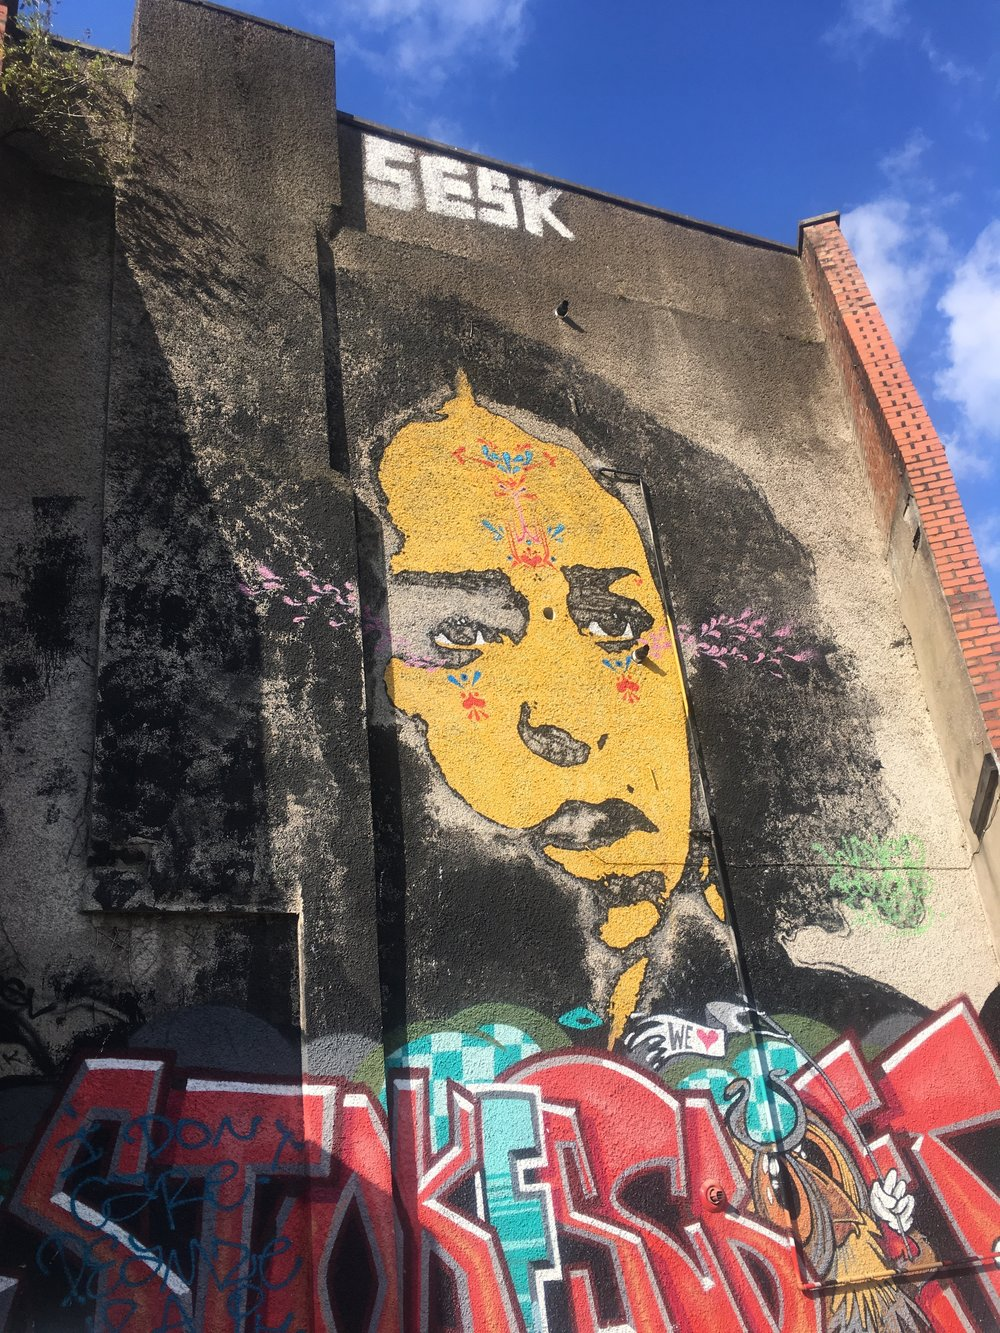 Walk the streets of Stokes Croft and take in the street art on every turn. Can you find Banksy's 'Mild Mild West'?     FREE | Stokes Croft, Bristol |